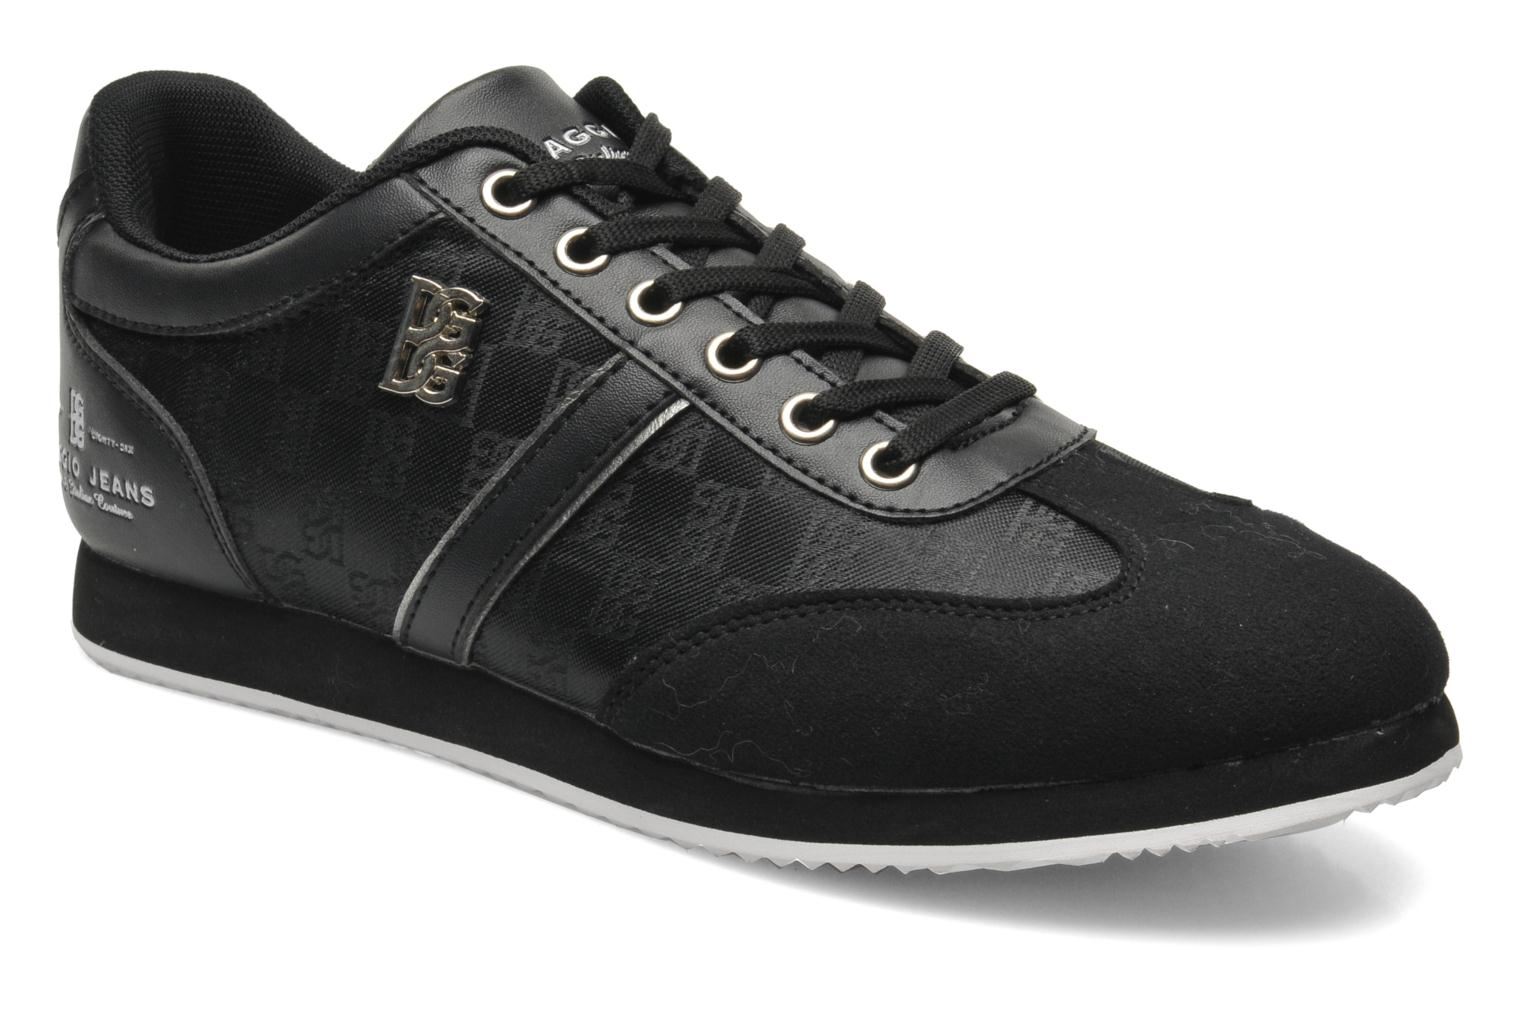 Sneakers Marque by Biaggio Jeans